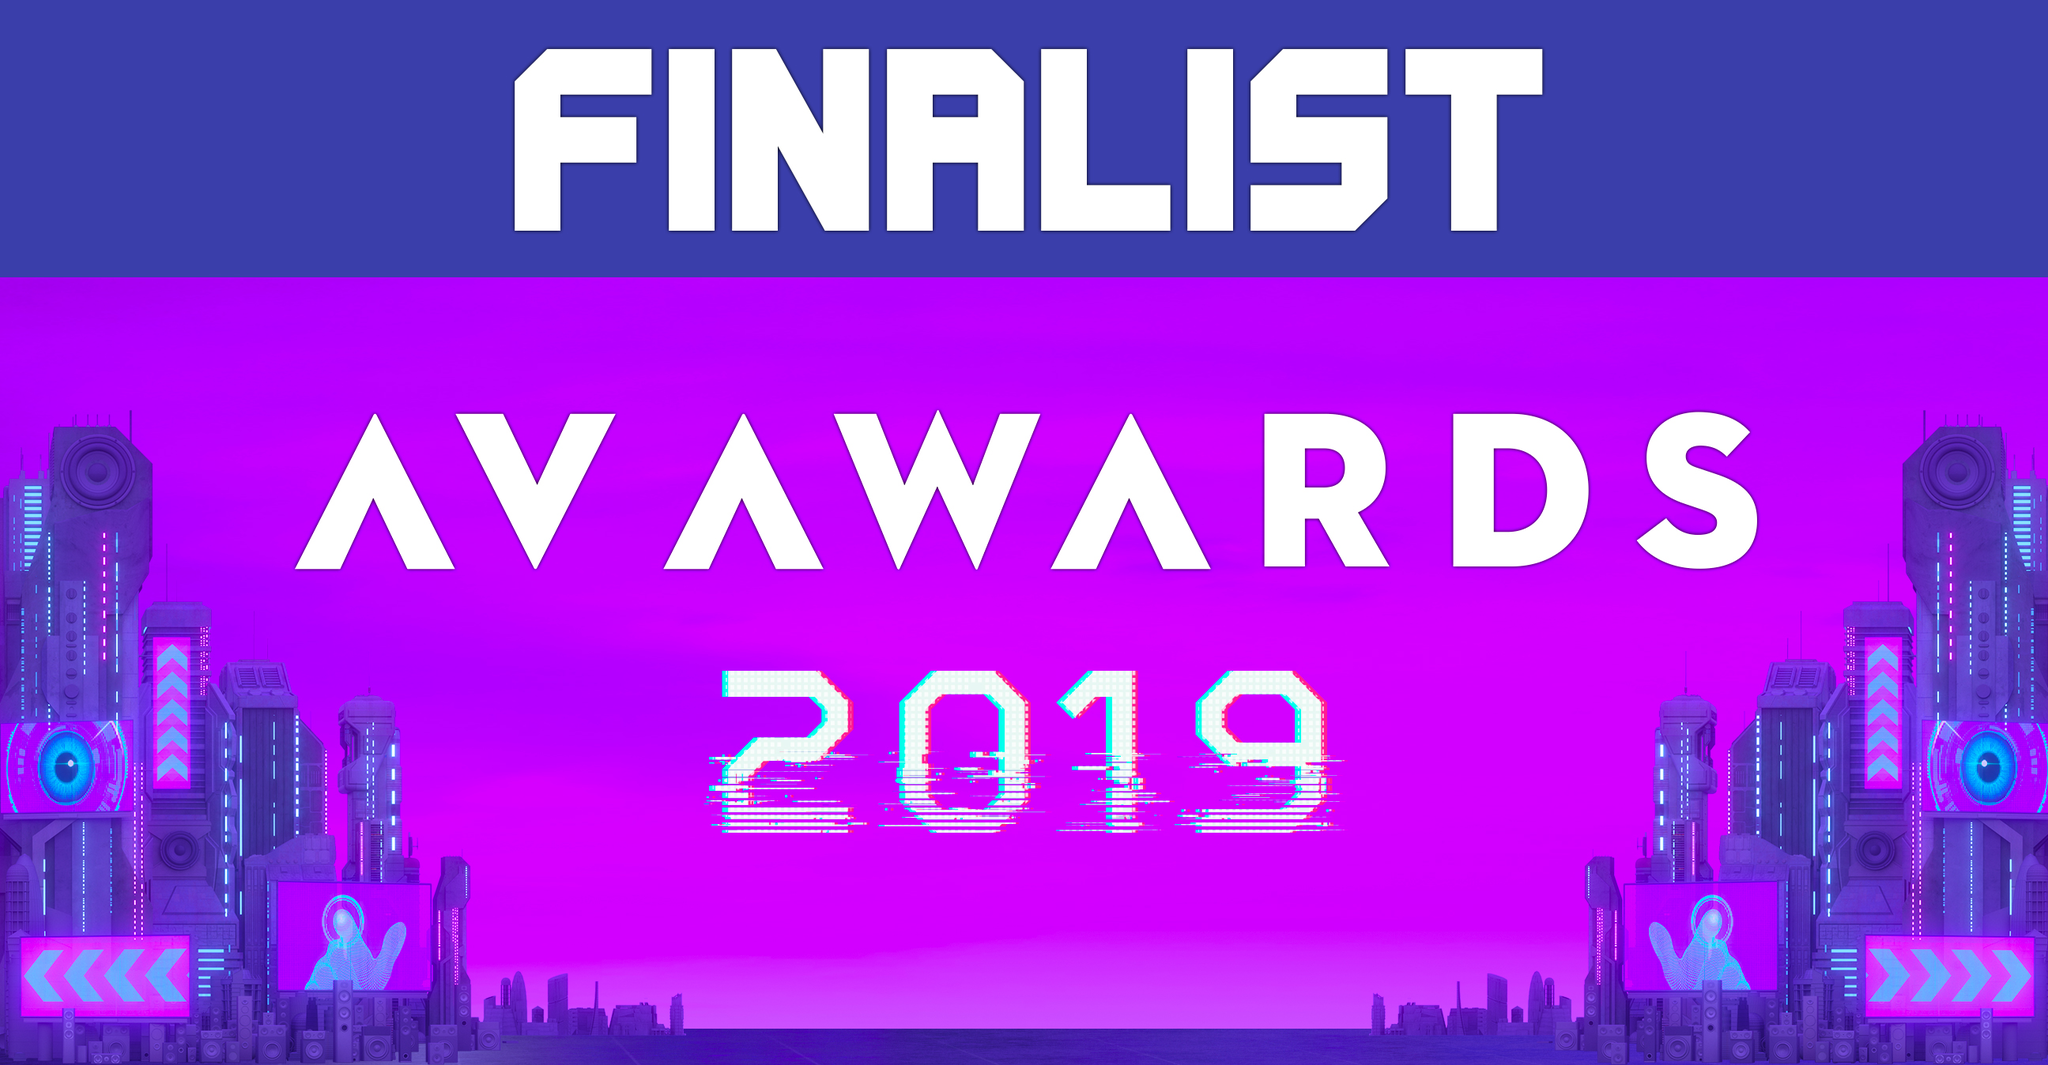 AVA2019-FINALIST - Evenlode Films and Pr